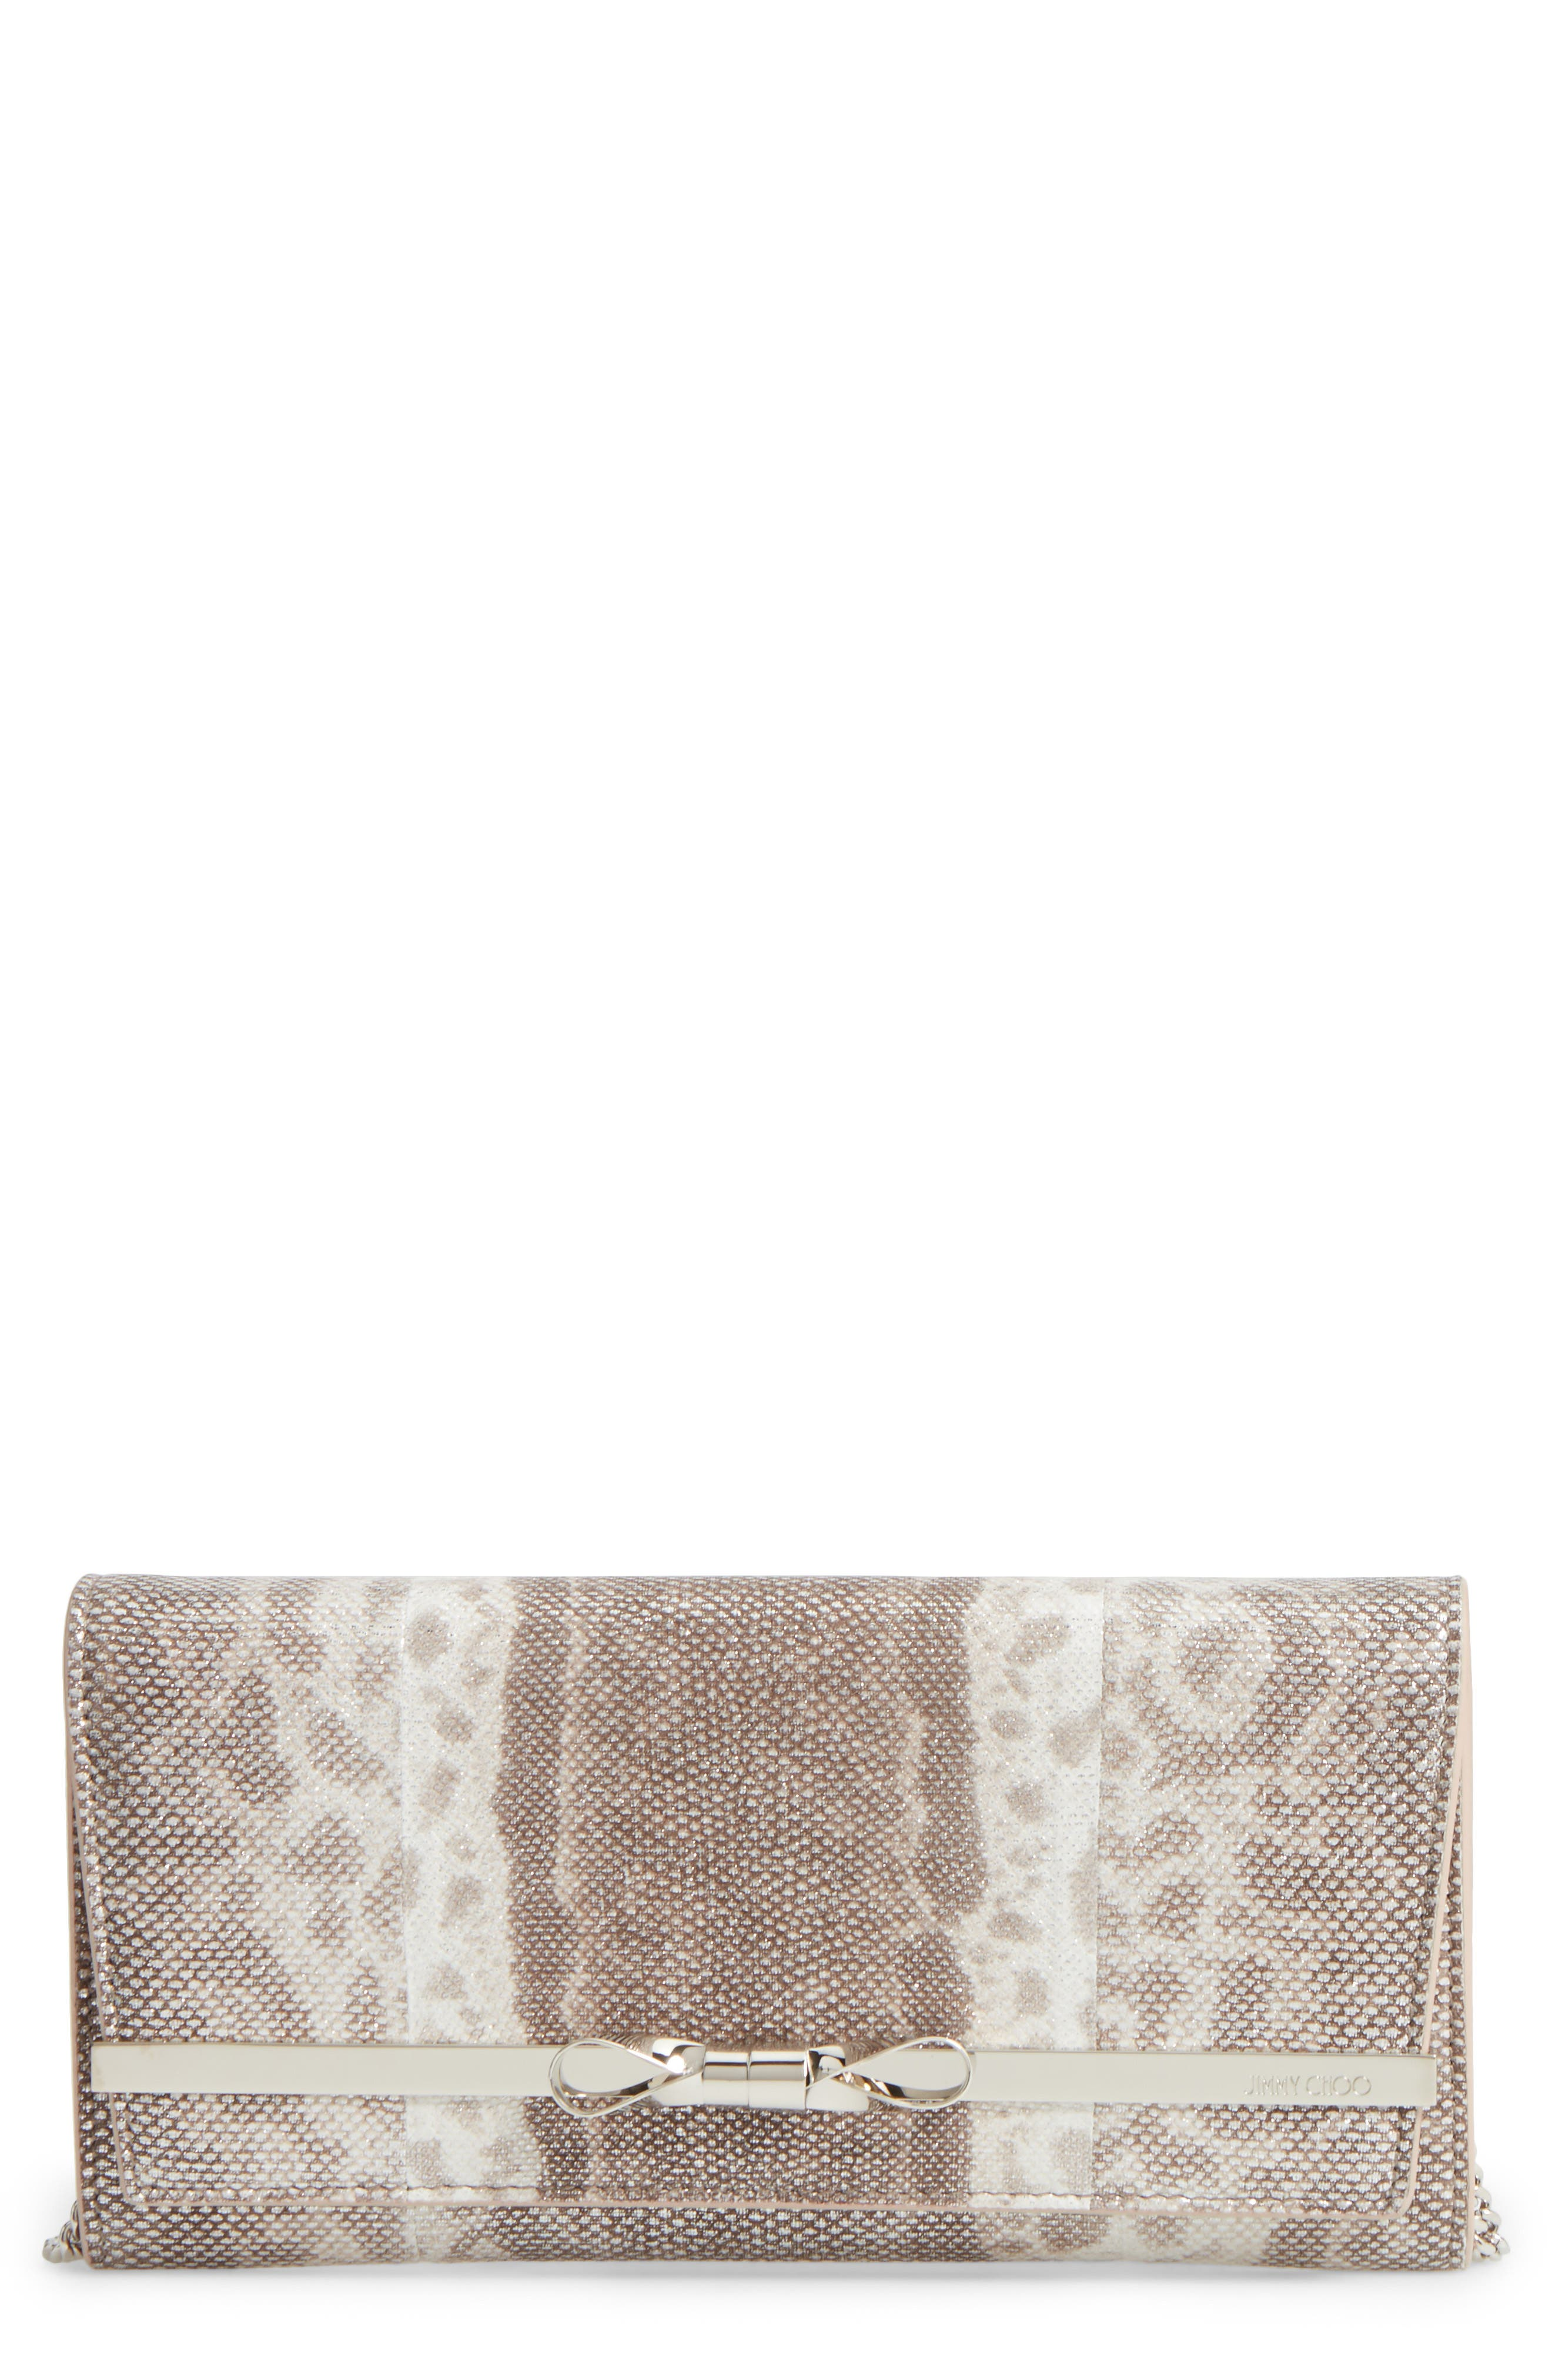 Jimmy Choo Lydia Genuine Snakeskin Envelope Clutch